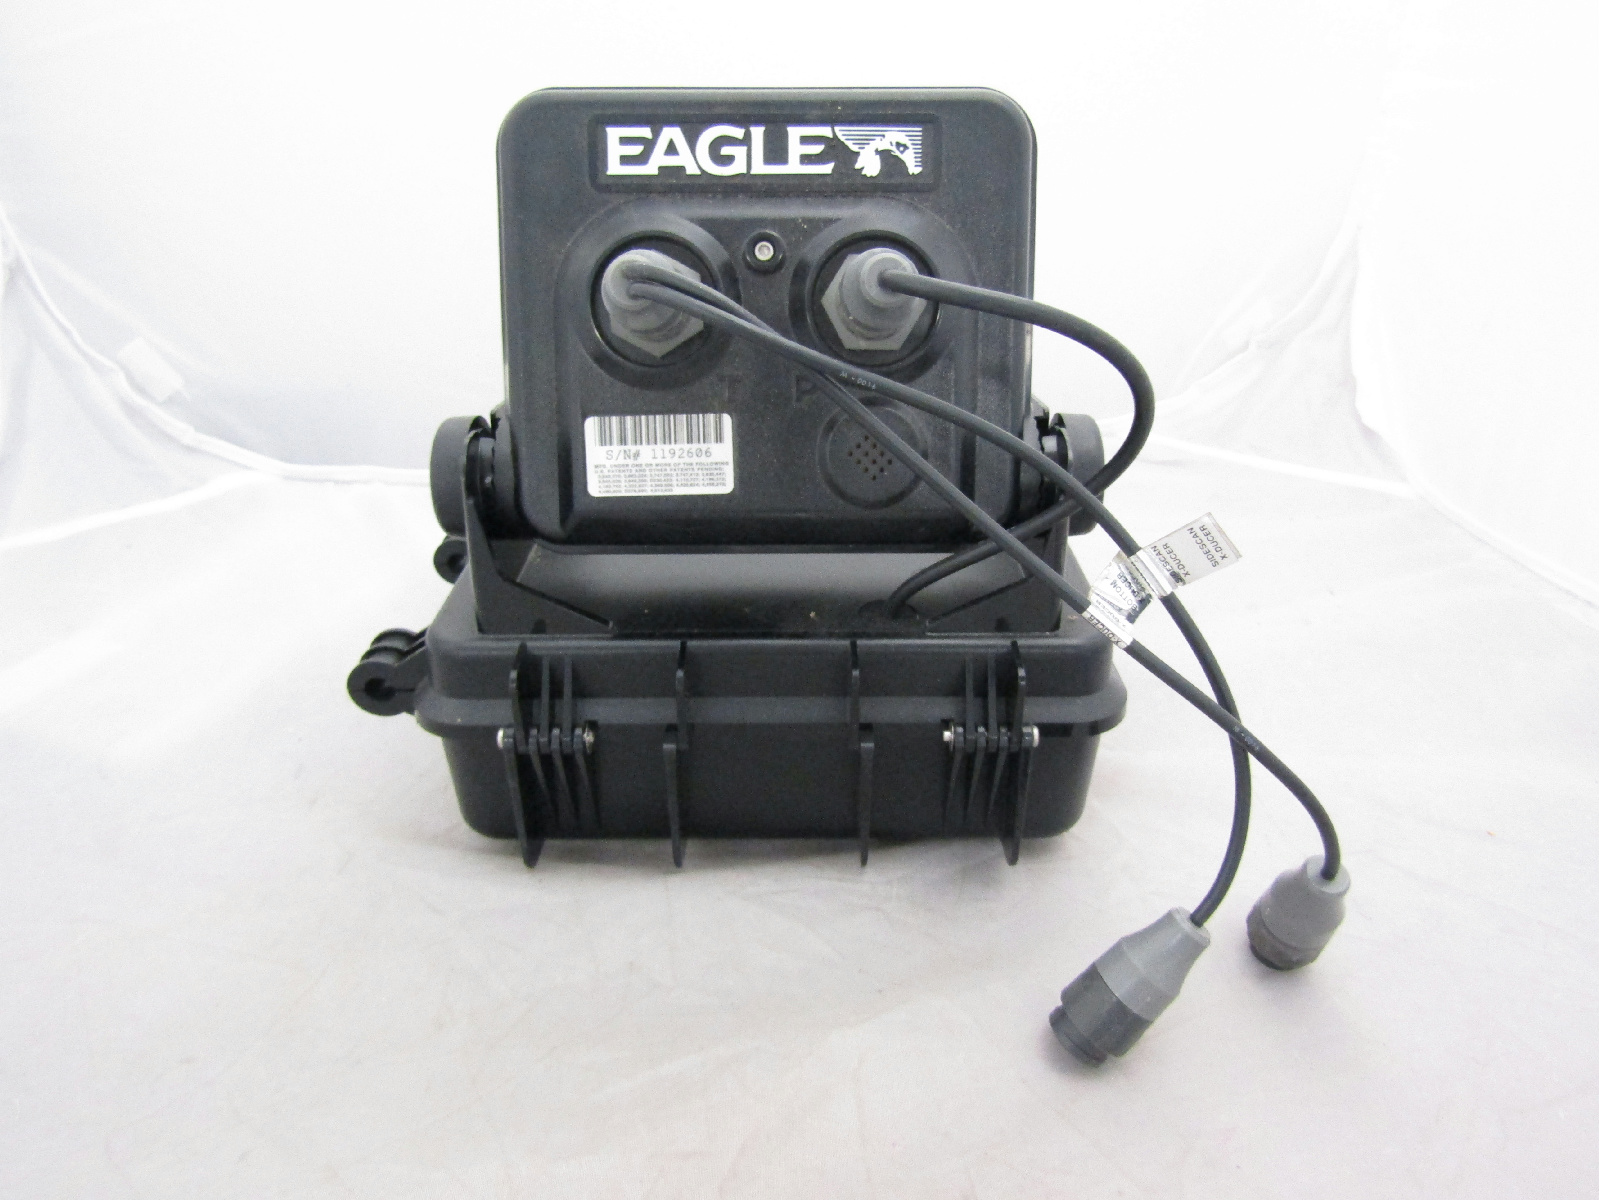 eagle magna ii portable fish finder w video 2